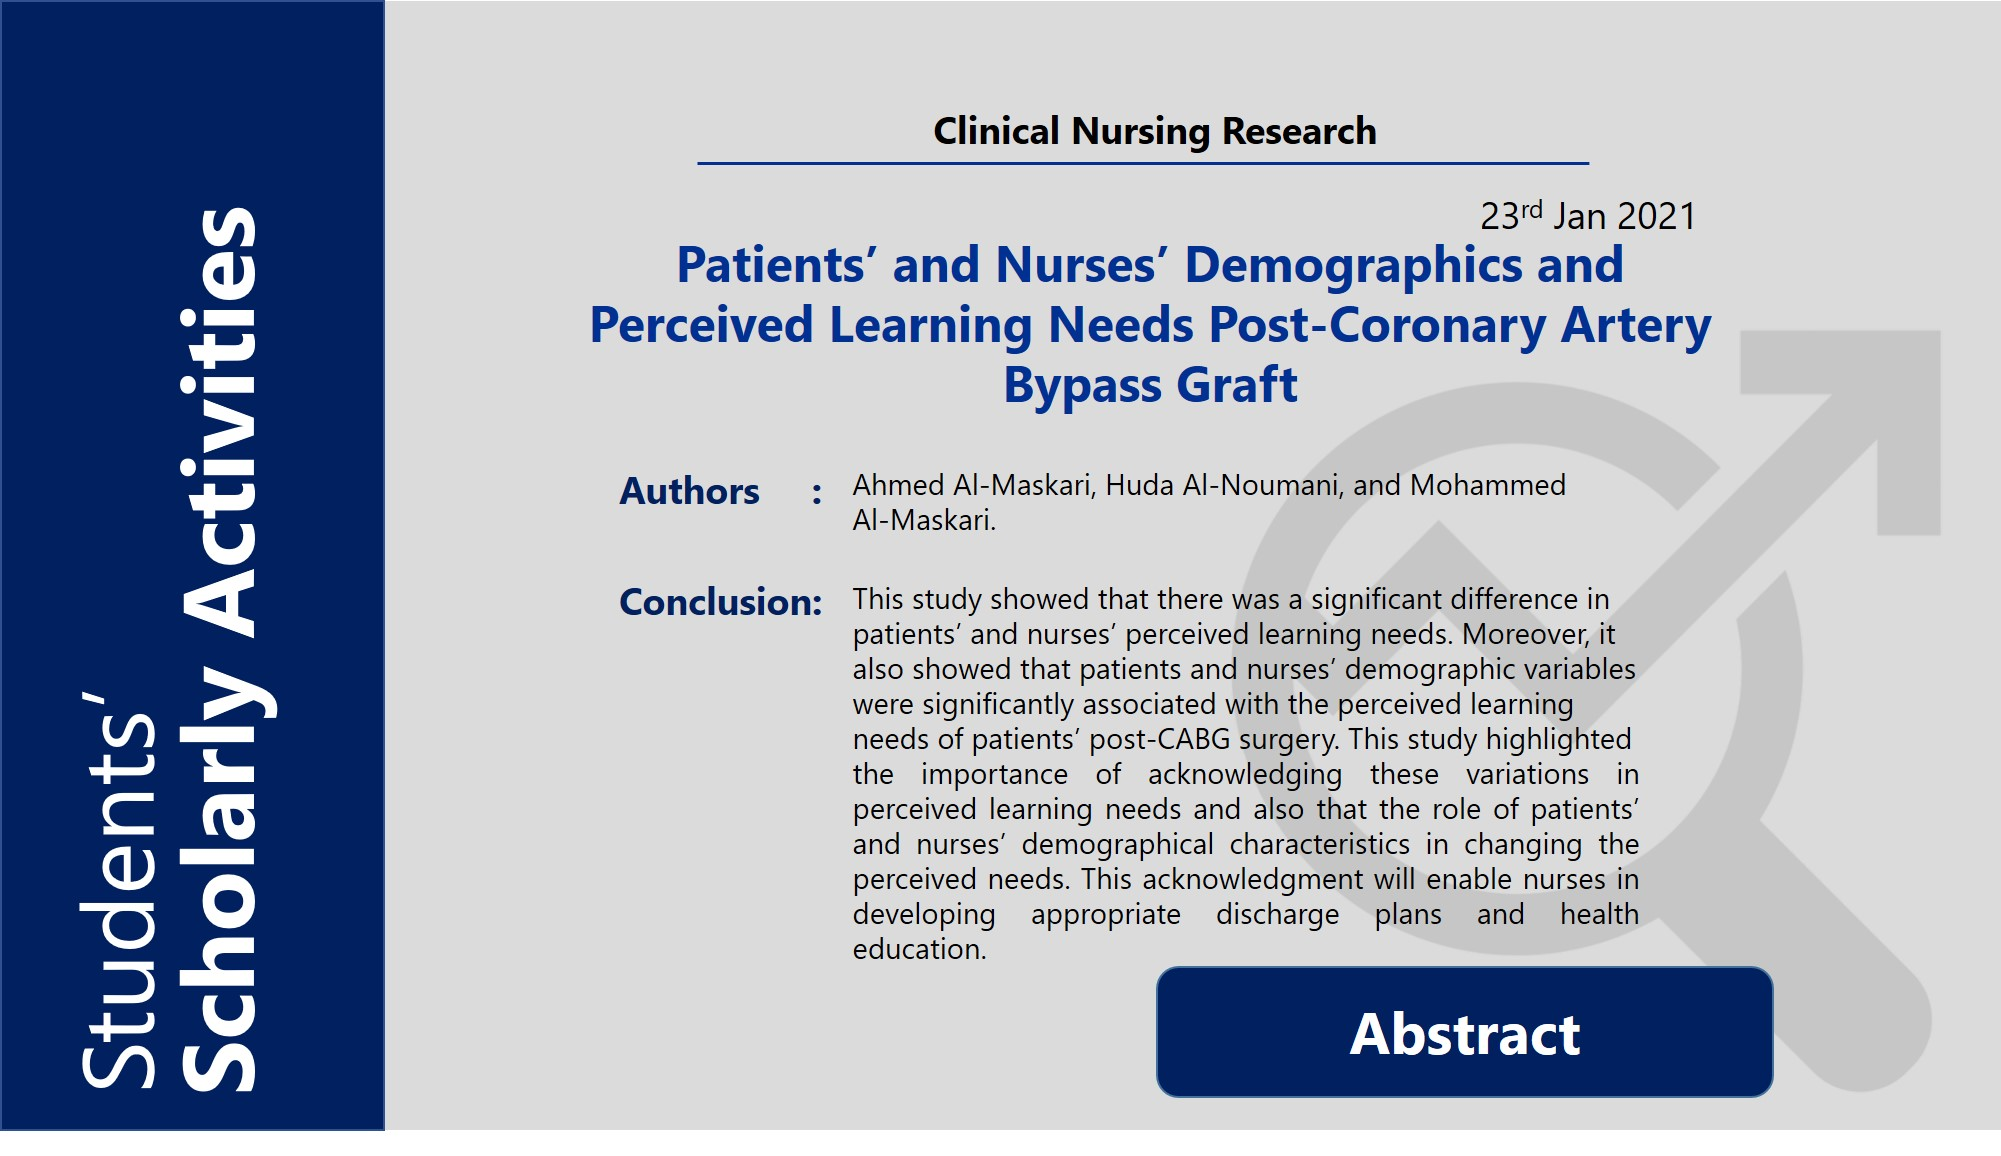 Patients' and Nurses' Demographics and Perceived Learning Needs Post-Coronary Artery Bypass Graft